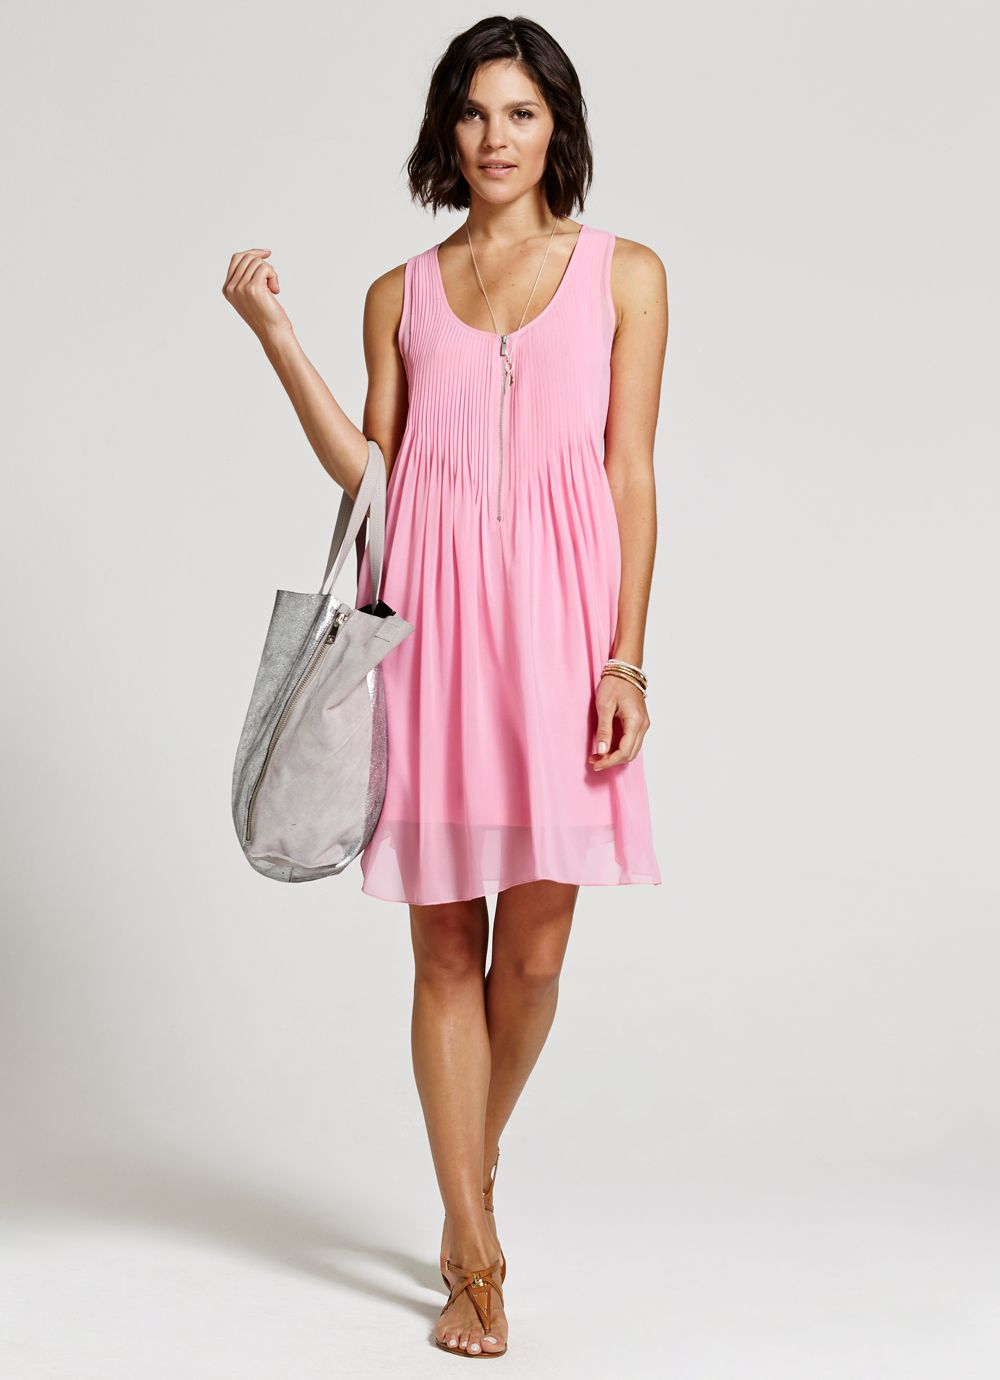 Candy zip pintuck dress